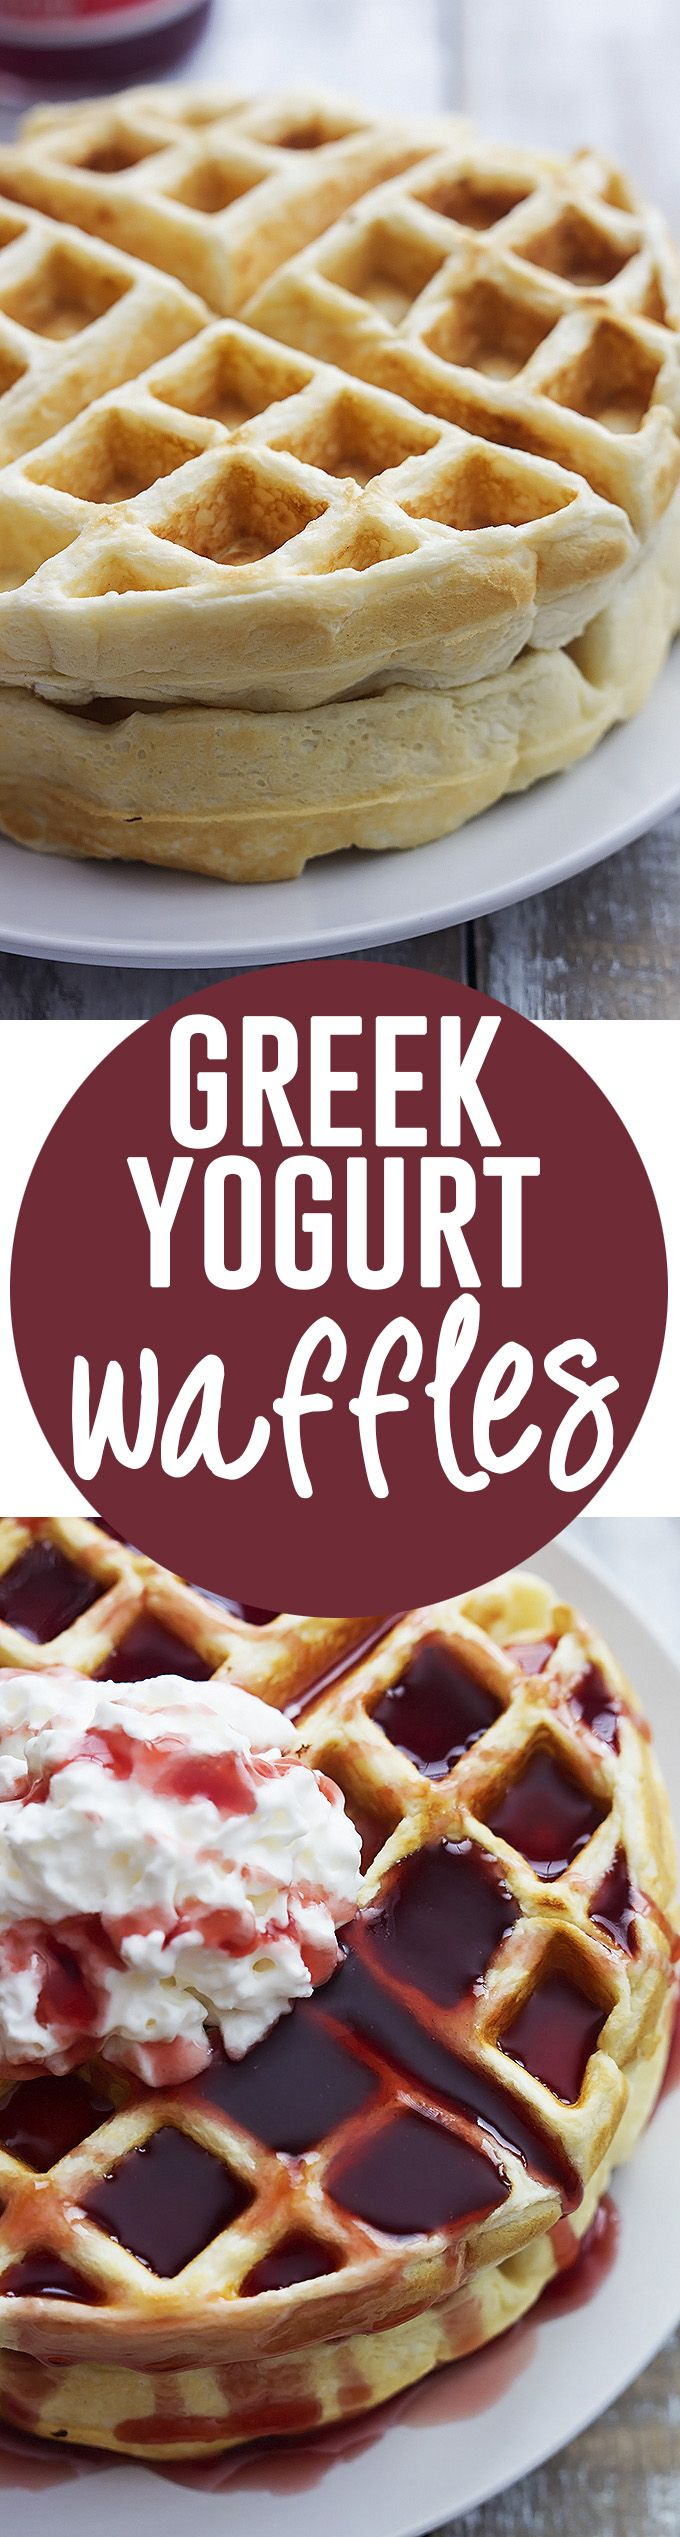 Greek Yogurt Waffles | Creme de la Crumb